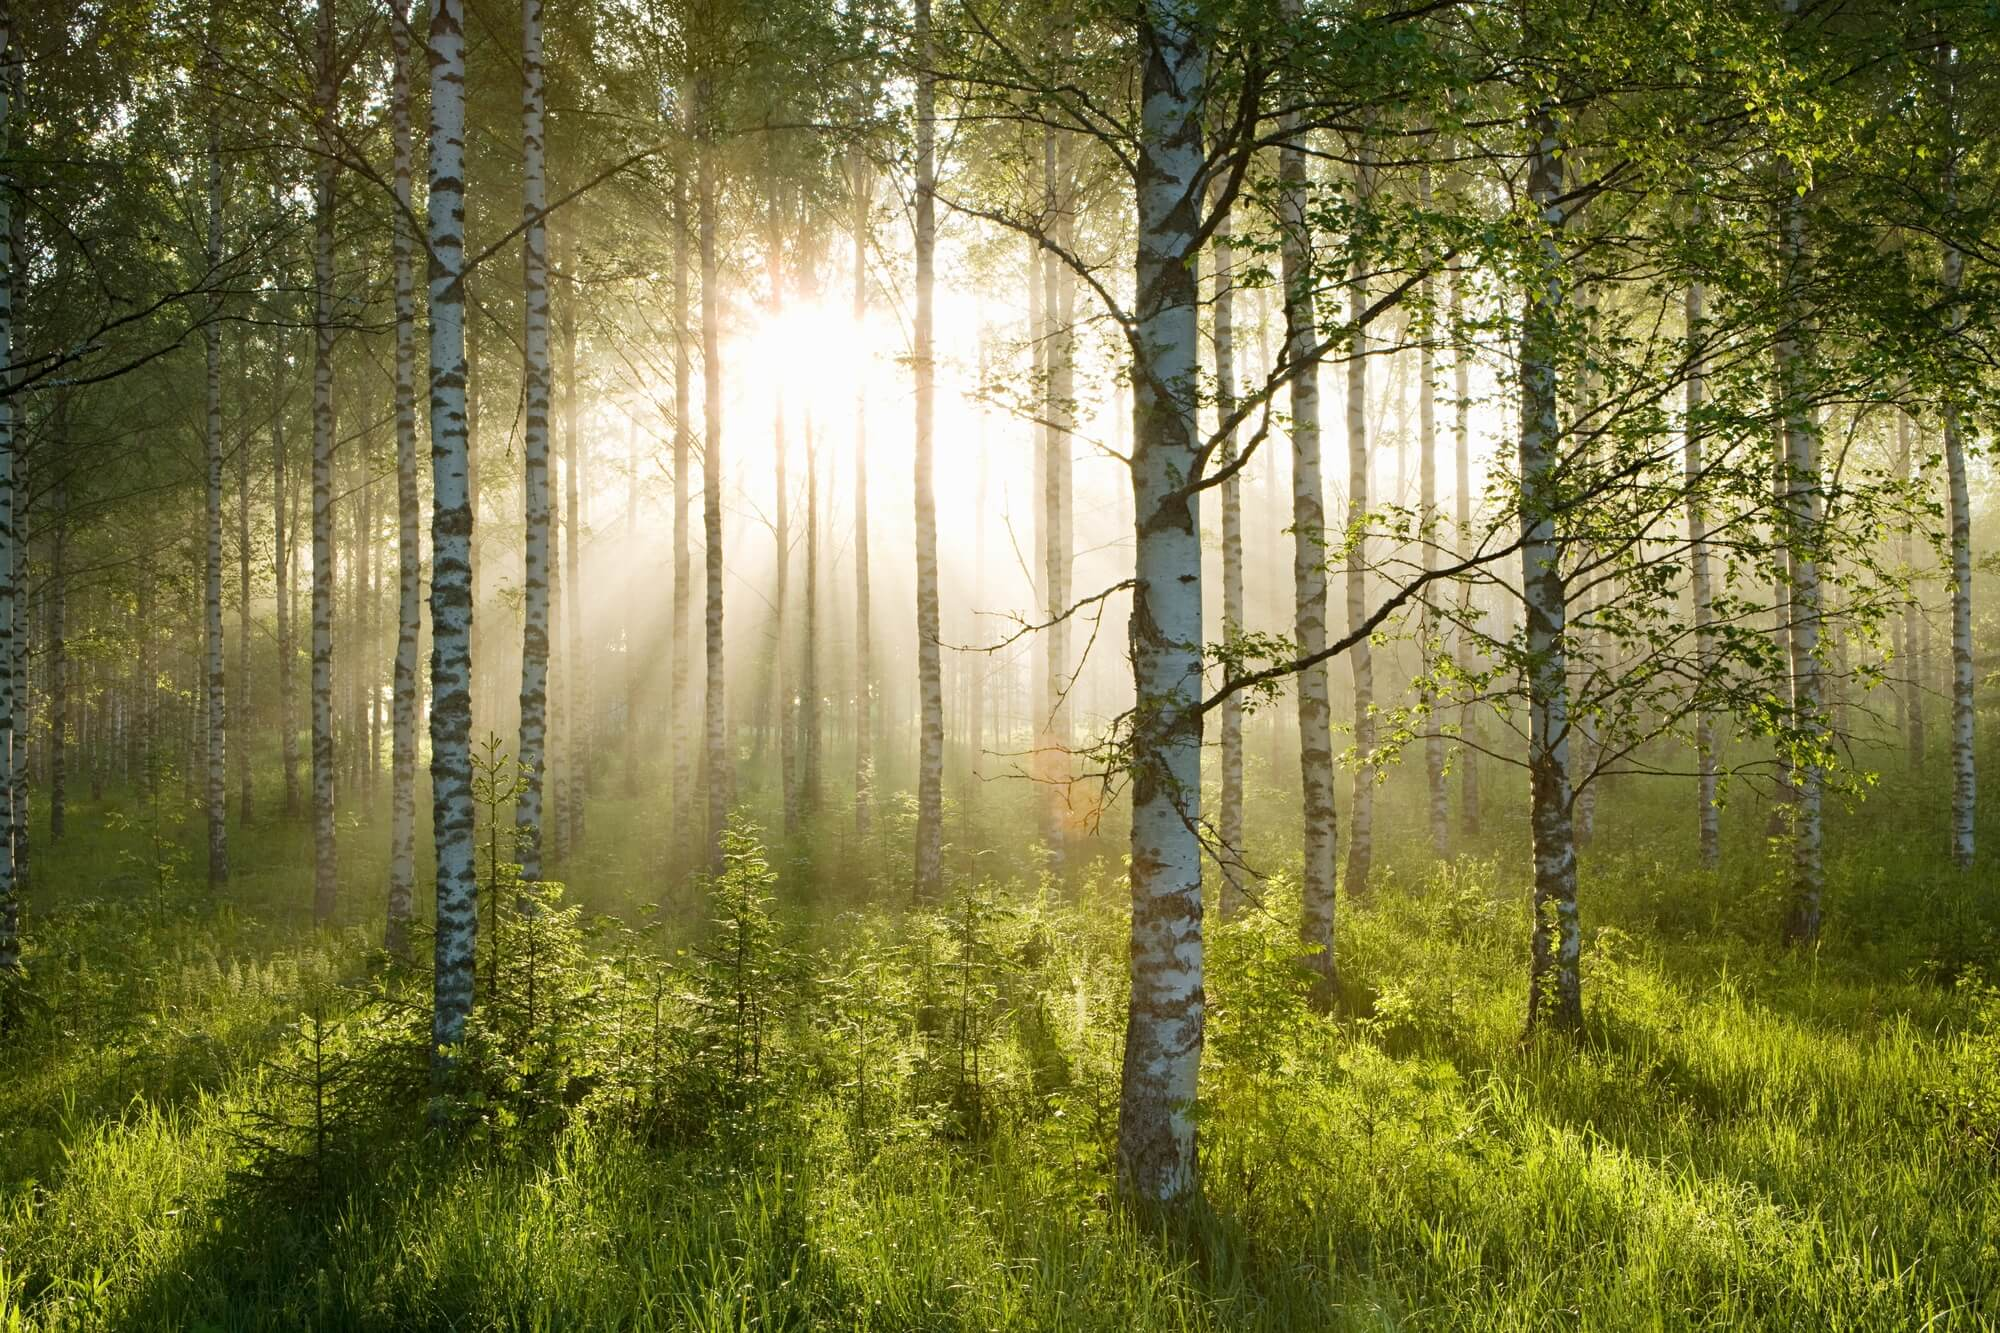 Tree wallpaper forest wallpaper murals wallsauce birch forest sunlight wallpaper amipublicfo Gallery